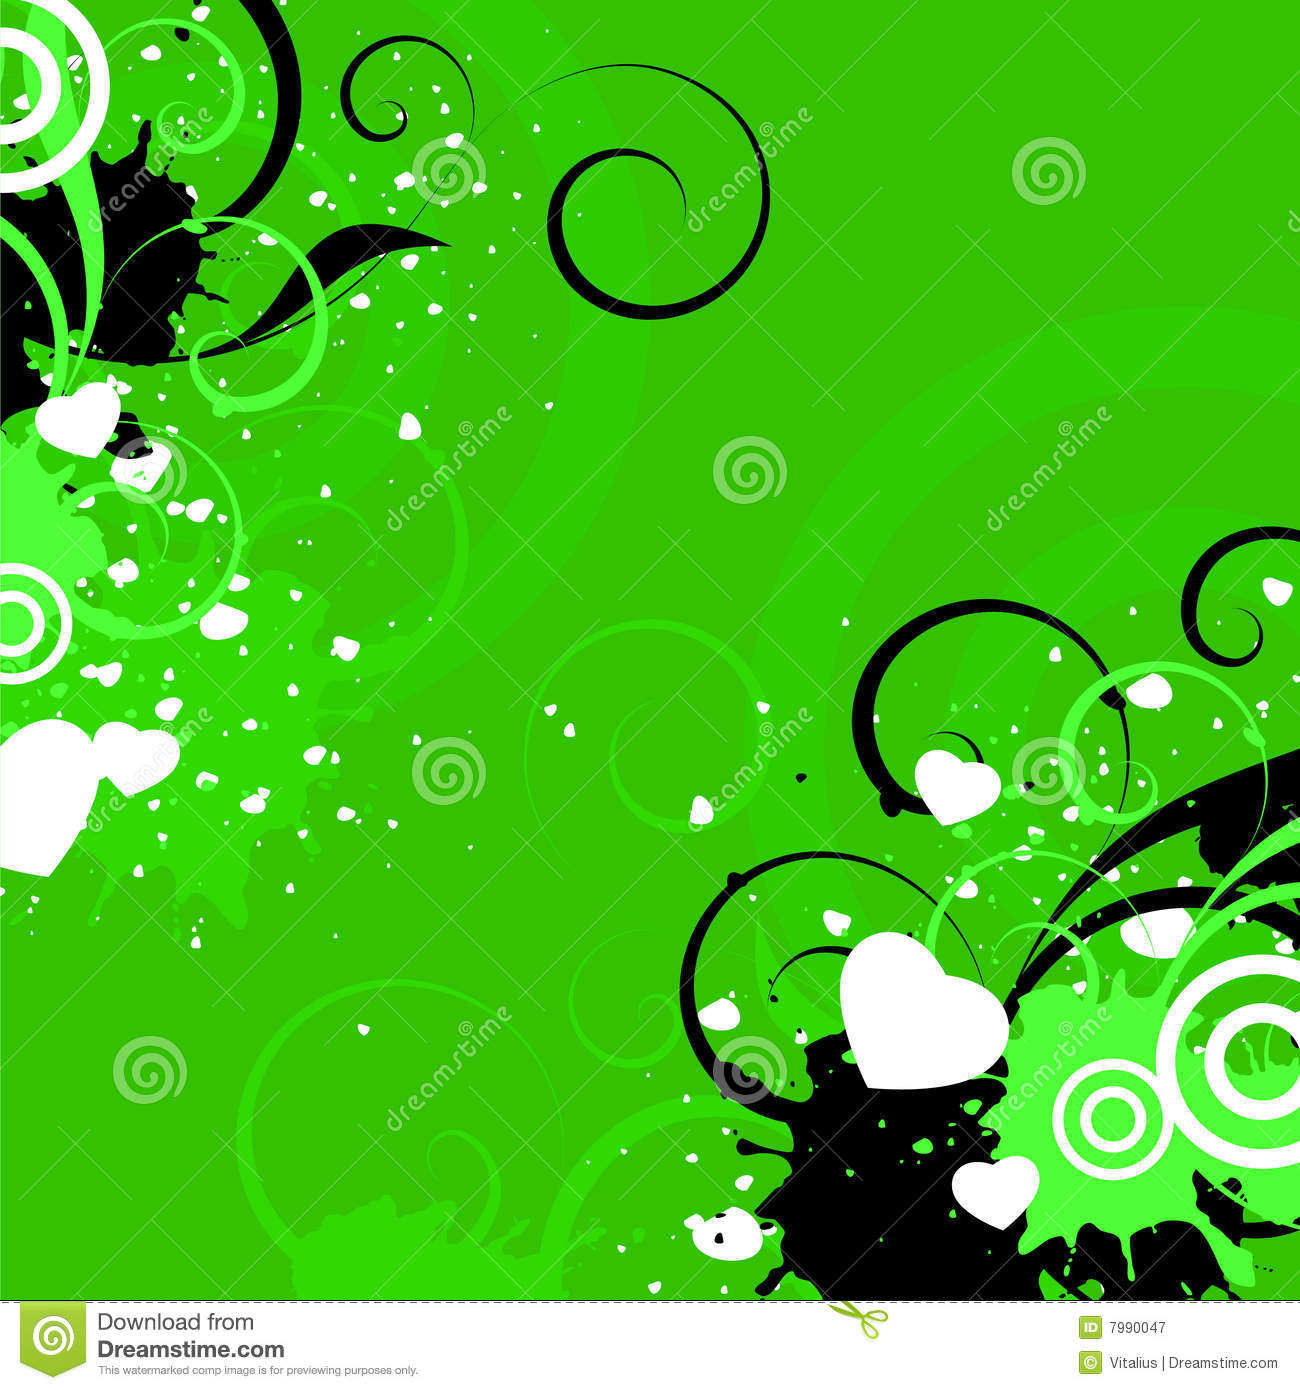 green hearts background - photo #24